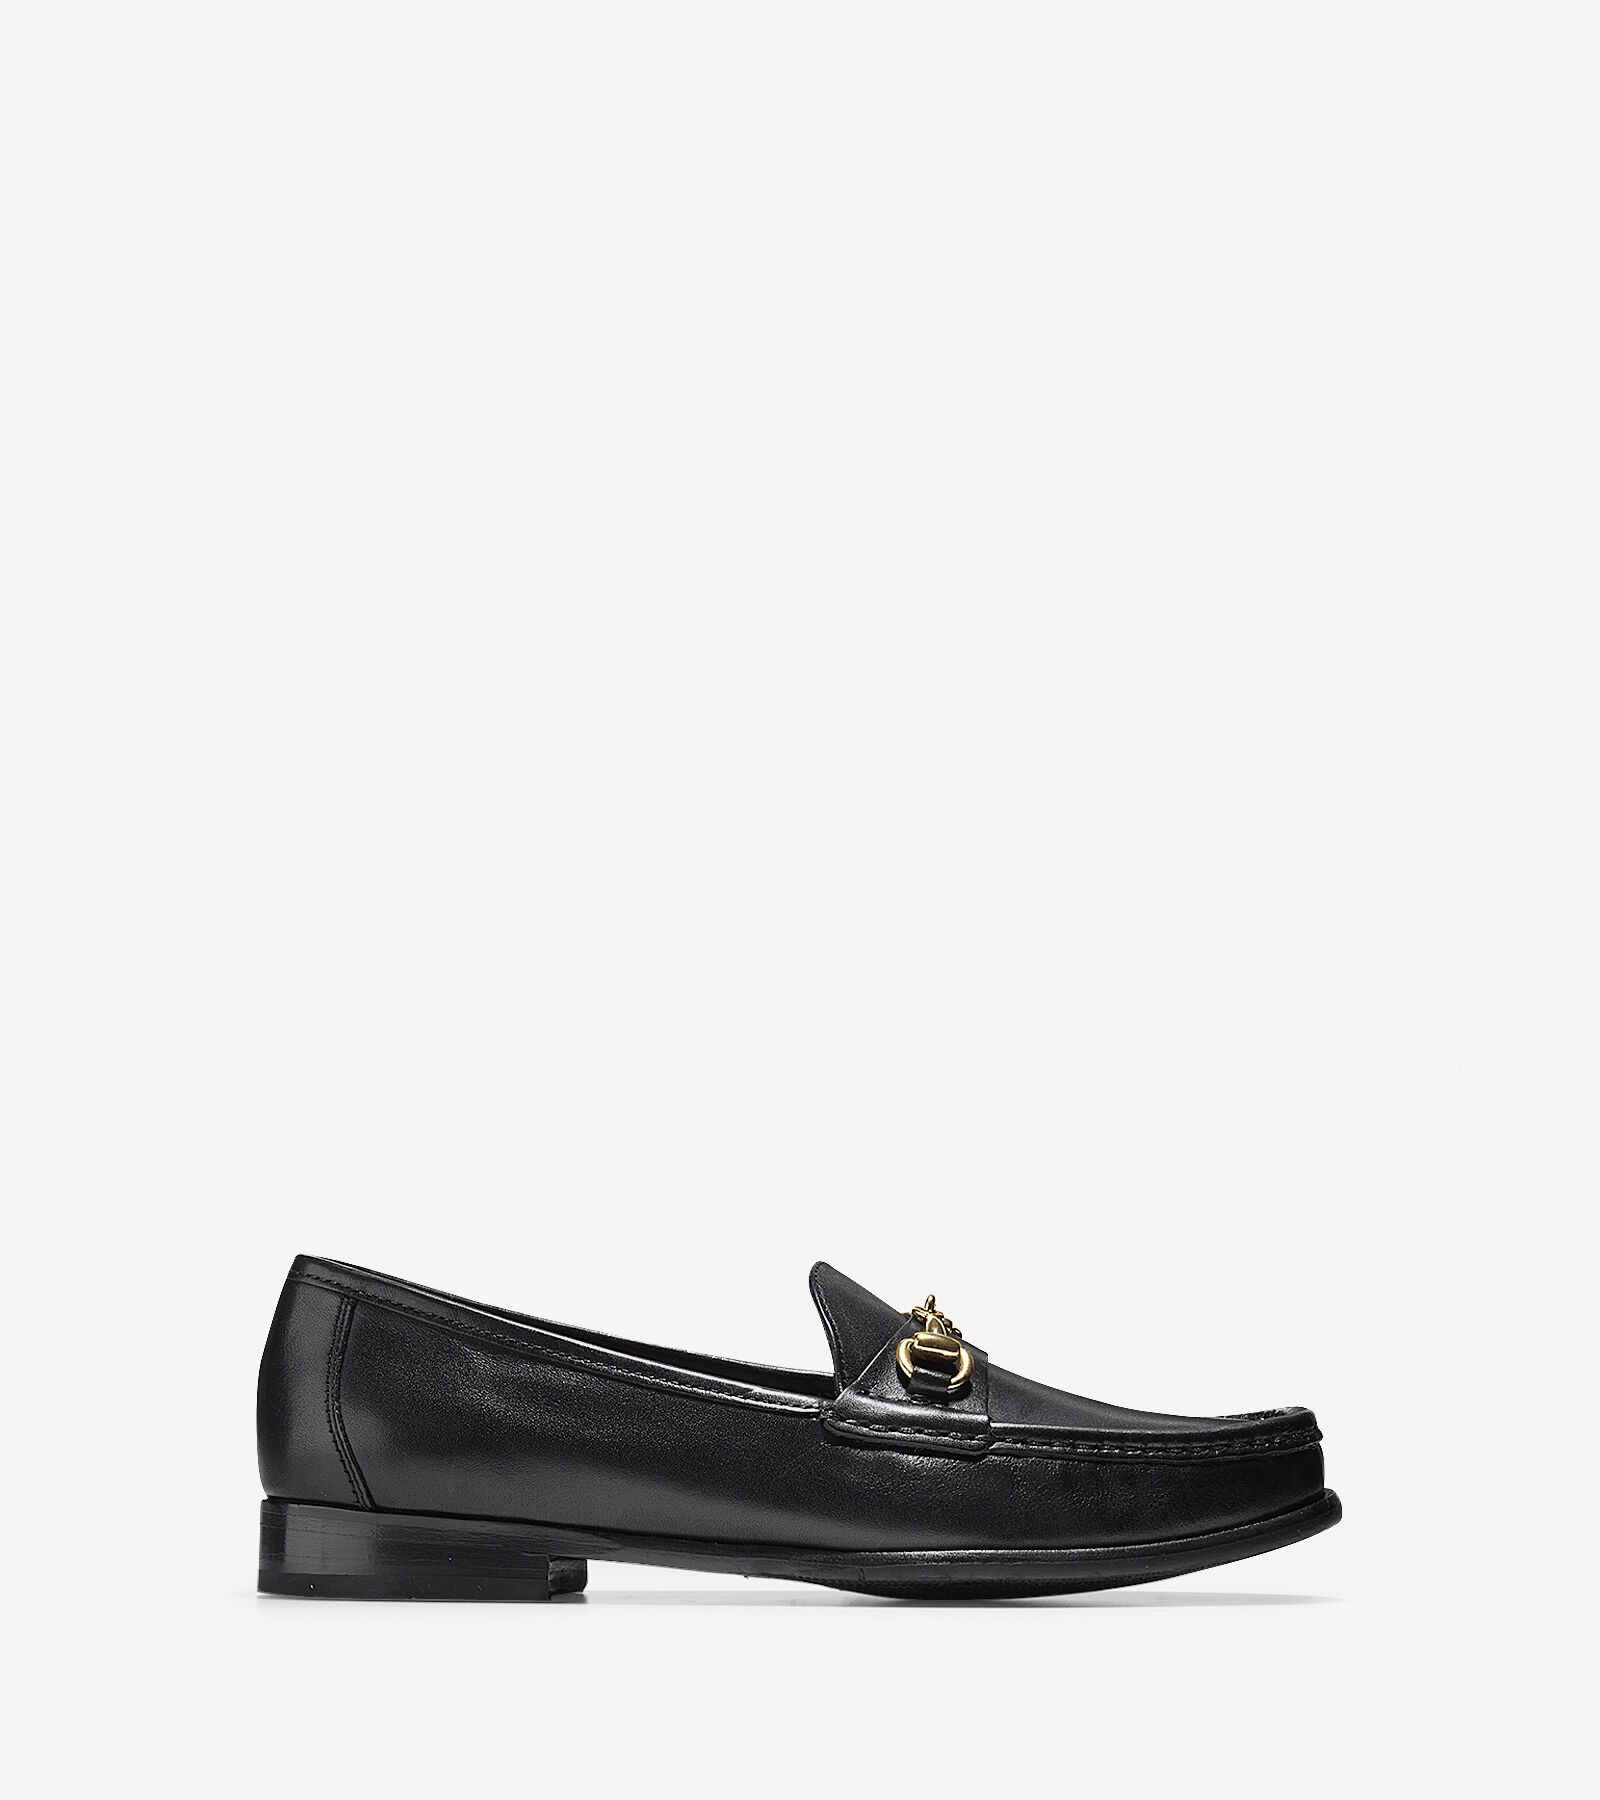 de11b01b6be Mens ascot bit loafers in black sale cole haan jpg 560x630 Cole haan ascot  loafer